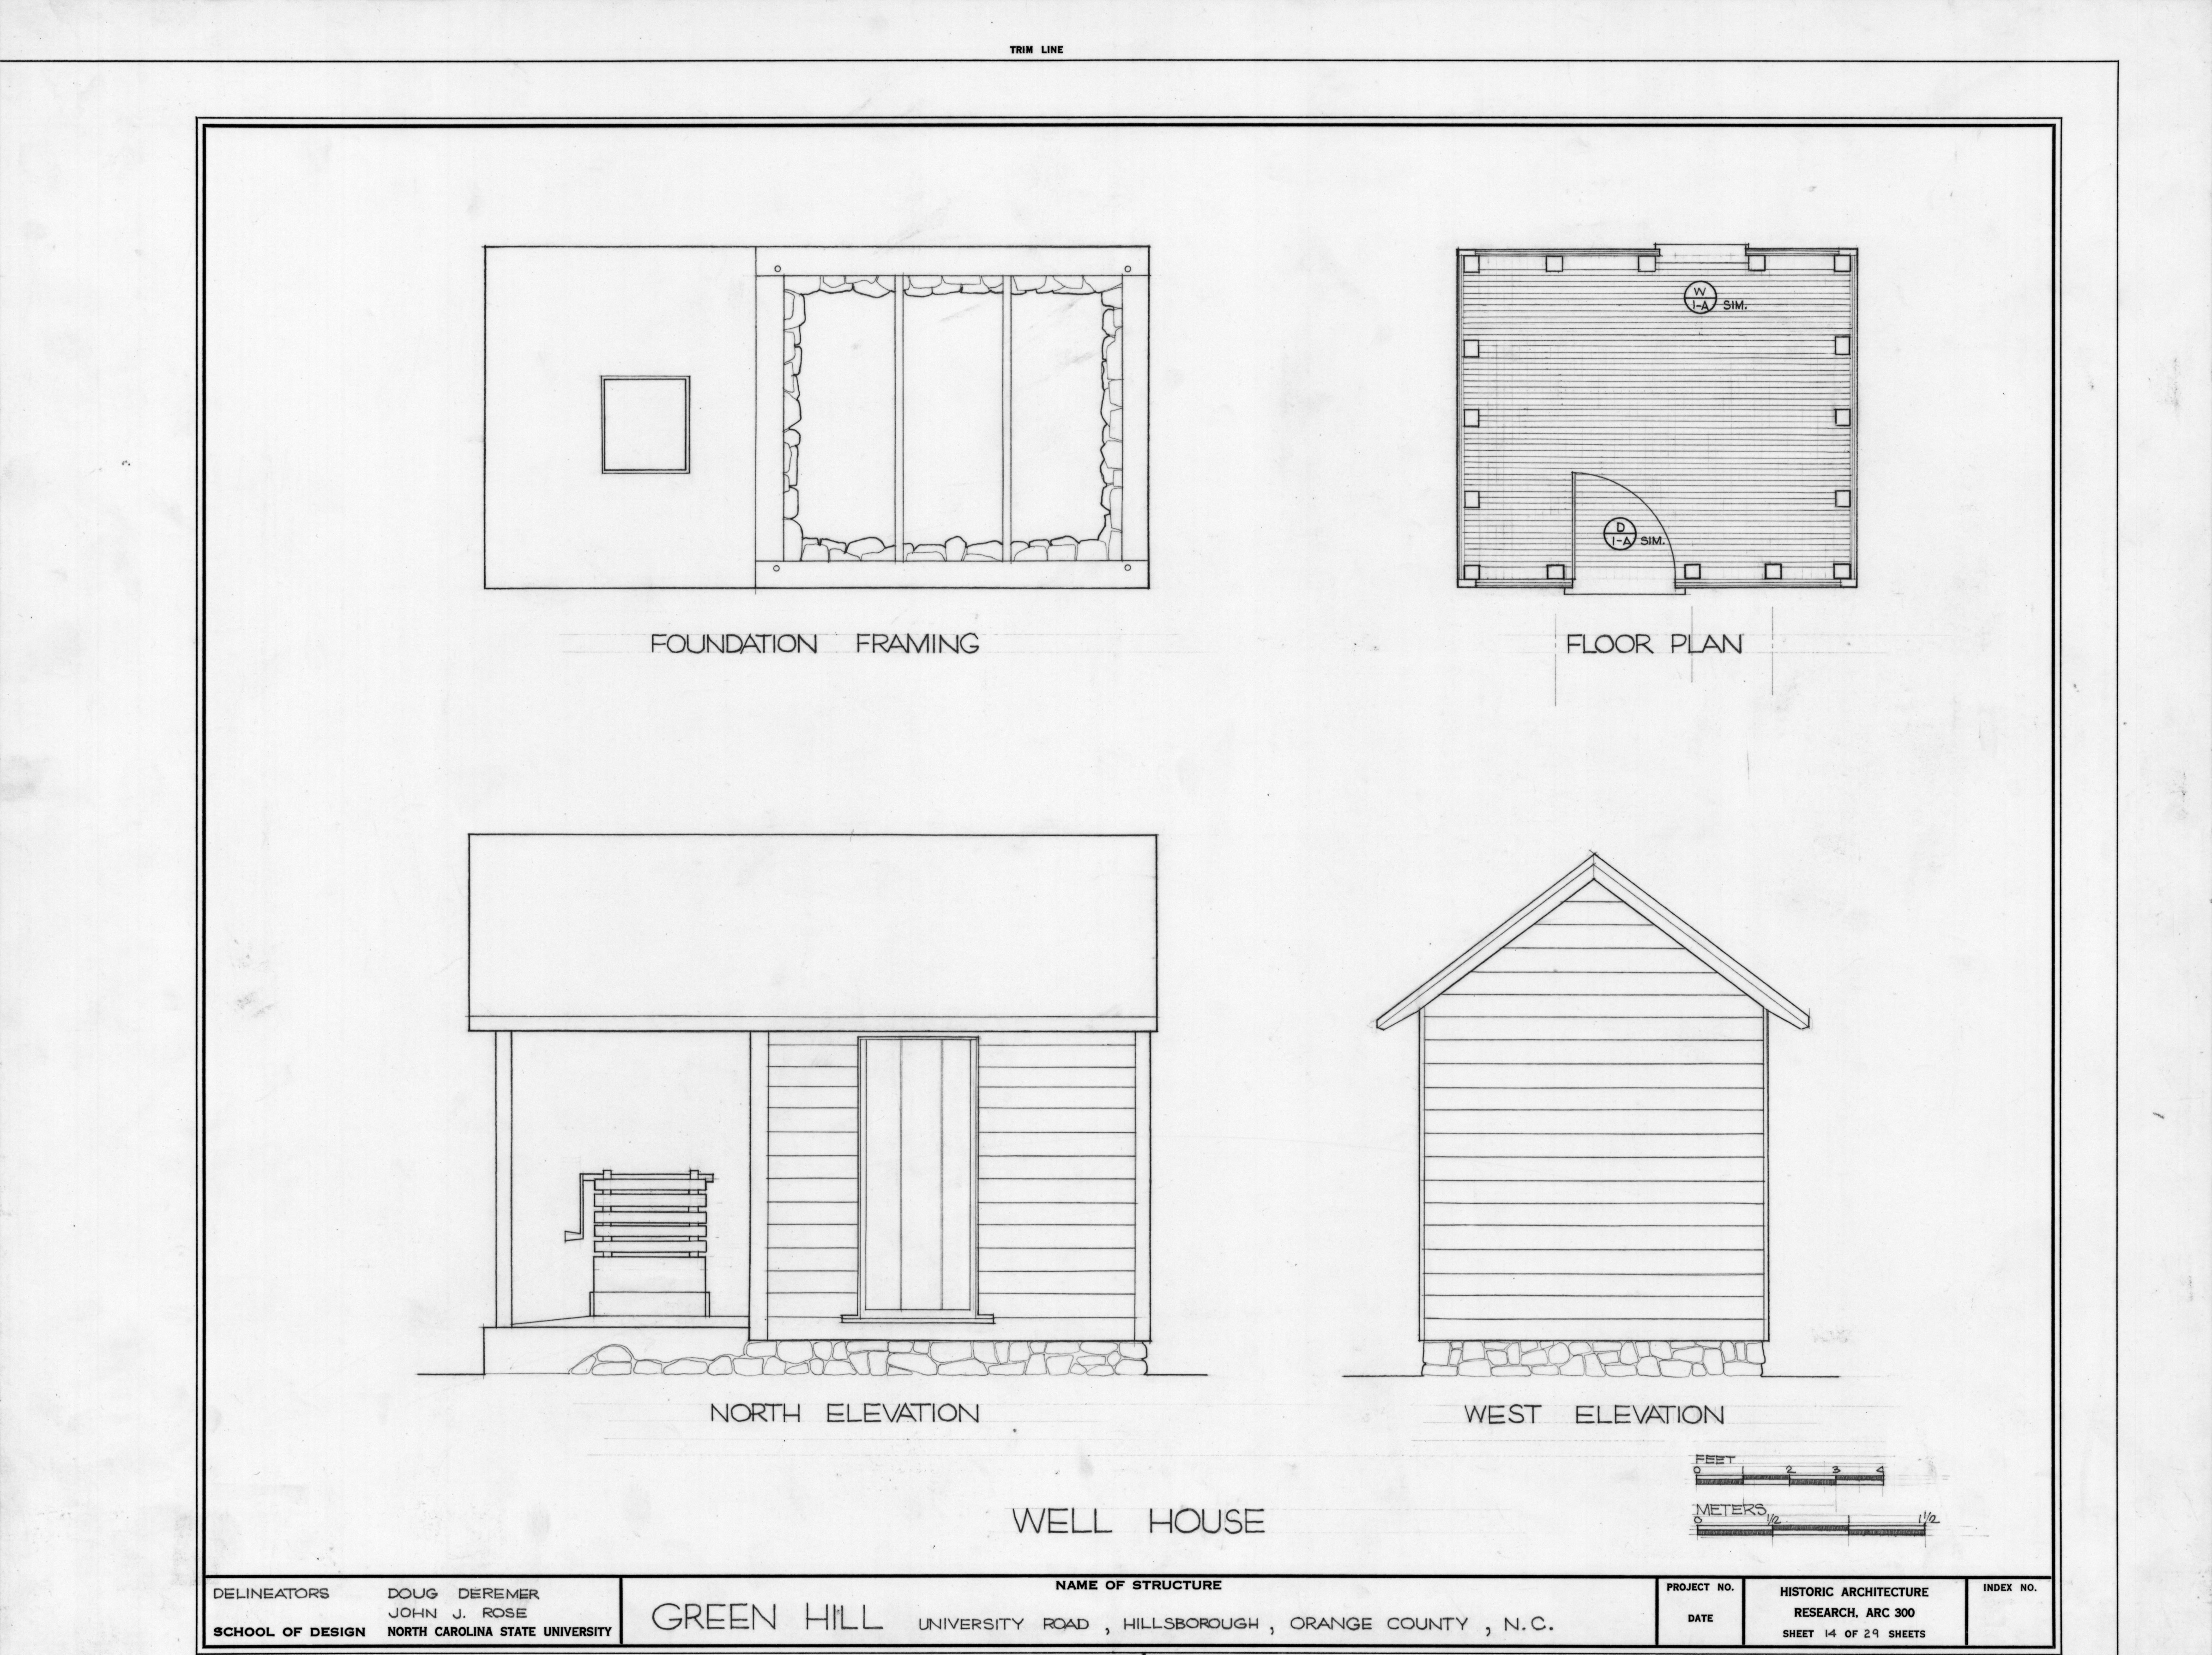 Well house plans and elevations green hill hillsborough for Digital house plans